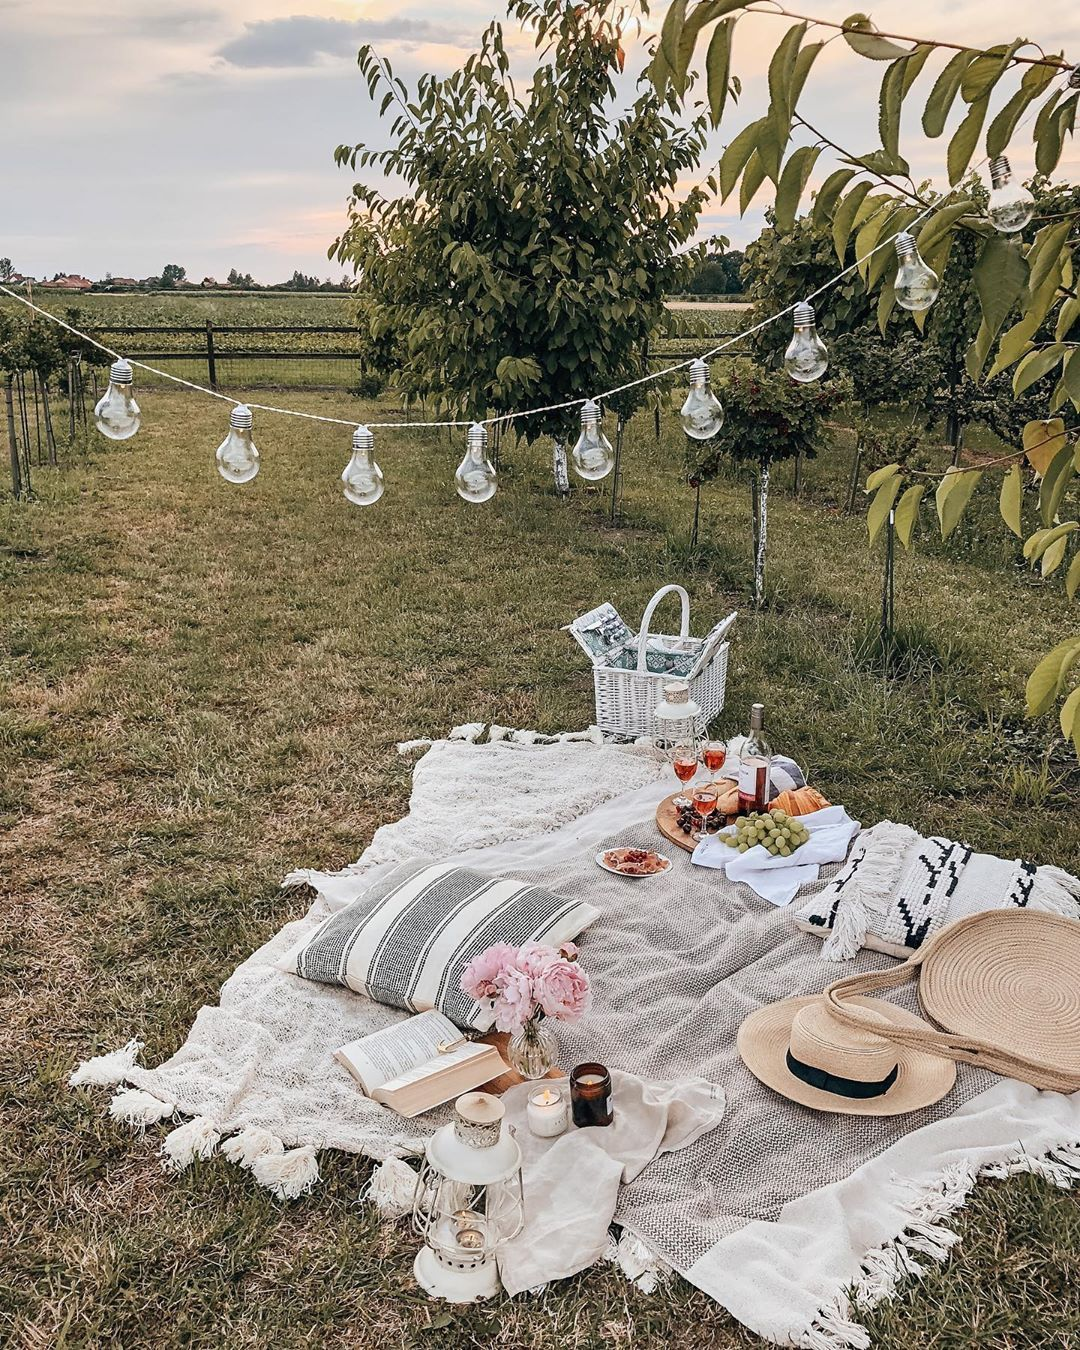 Summer 2020 isn't canceled! Three helpful tips to help you decorate your home for summer in the DecorMatters blog! Also, we love how @alabasterfox makes the most of what she has by decorating this stunning outdoor picnic 💛. Click the image to try our free home design app.  (Keywords: patio decor, patio ideas, backyard patio, dream home, home decor ideas, outdoor fireplace, outdoor patio ideas, DIY home decor, backyard patio decor, backyard garden, patio decorating ideas)